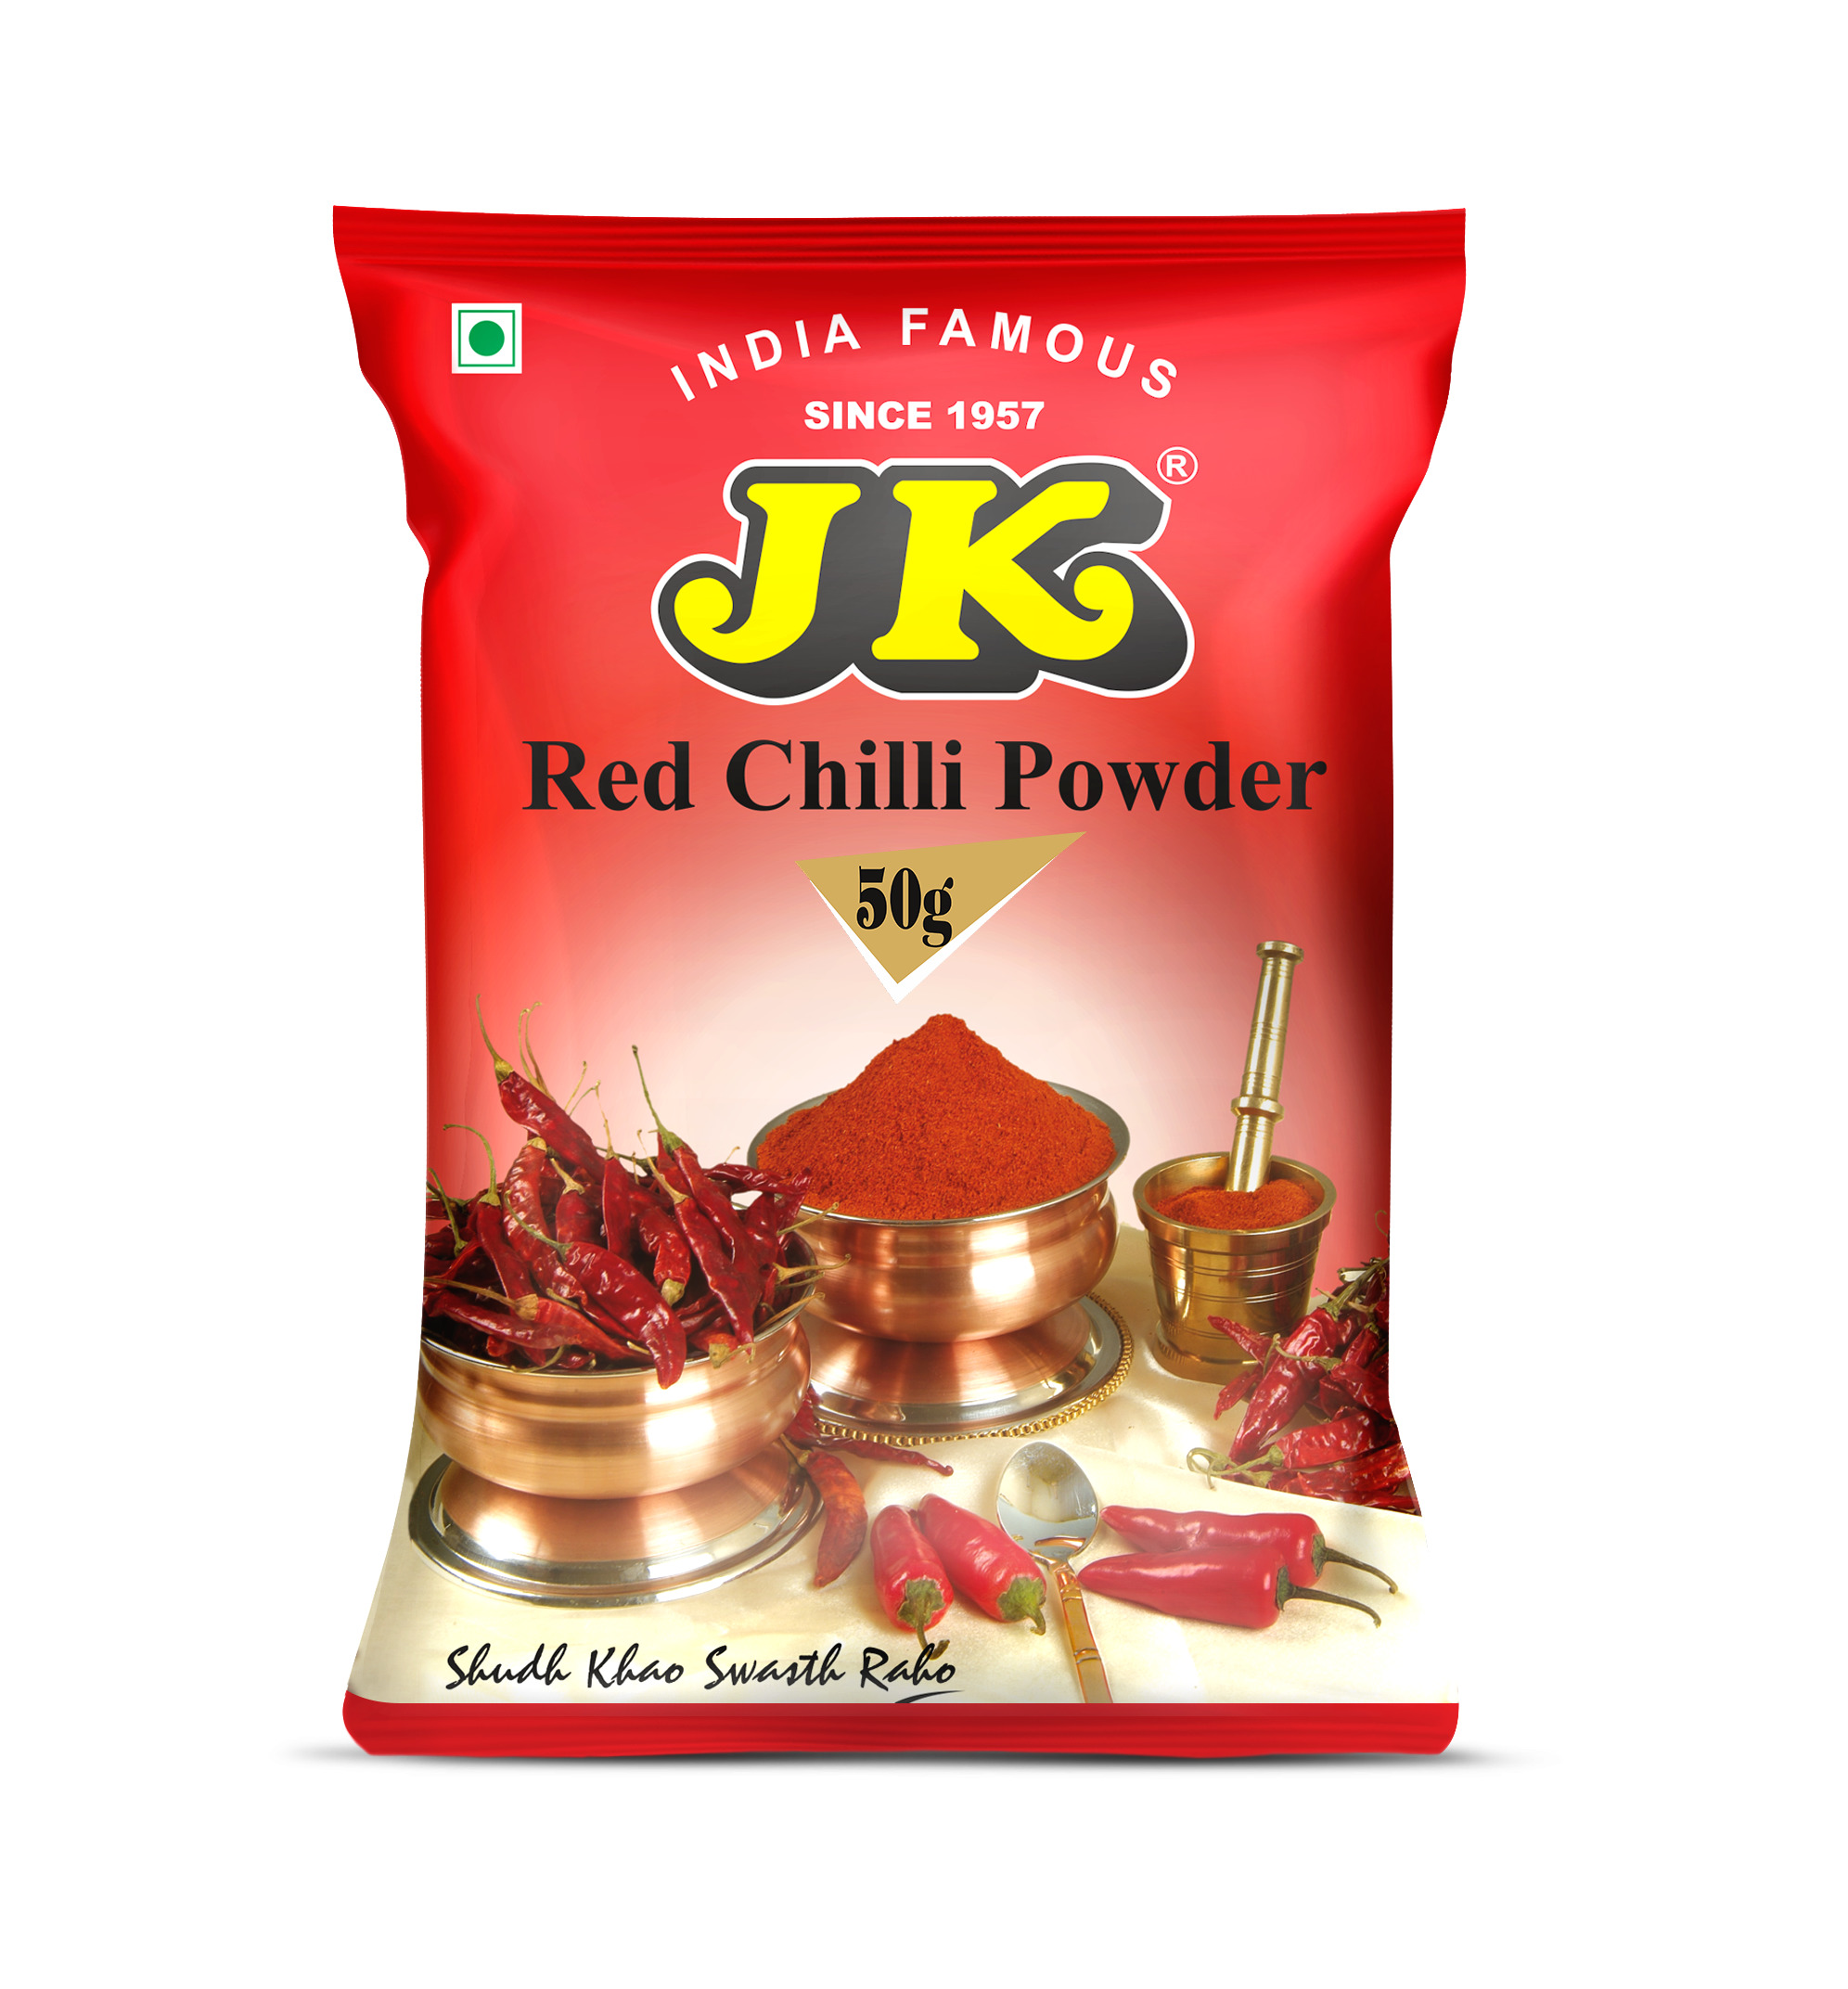 JK Red Chilli Powder